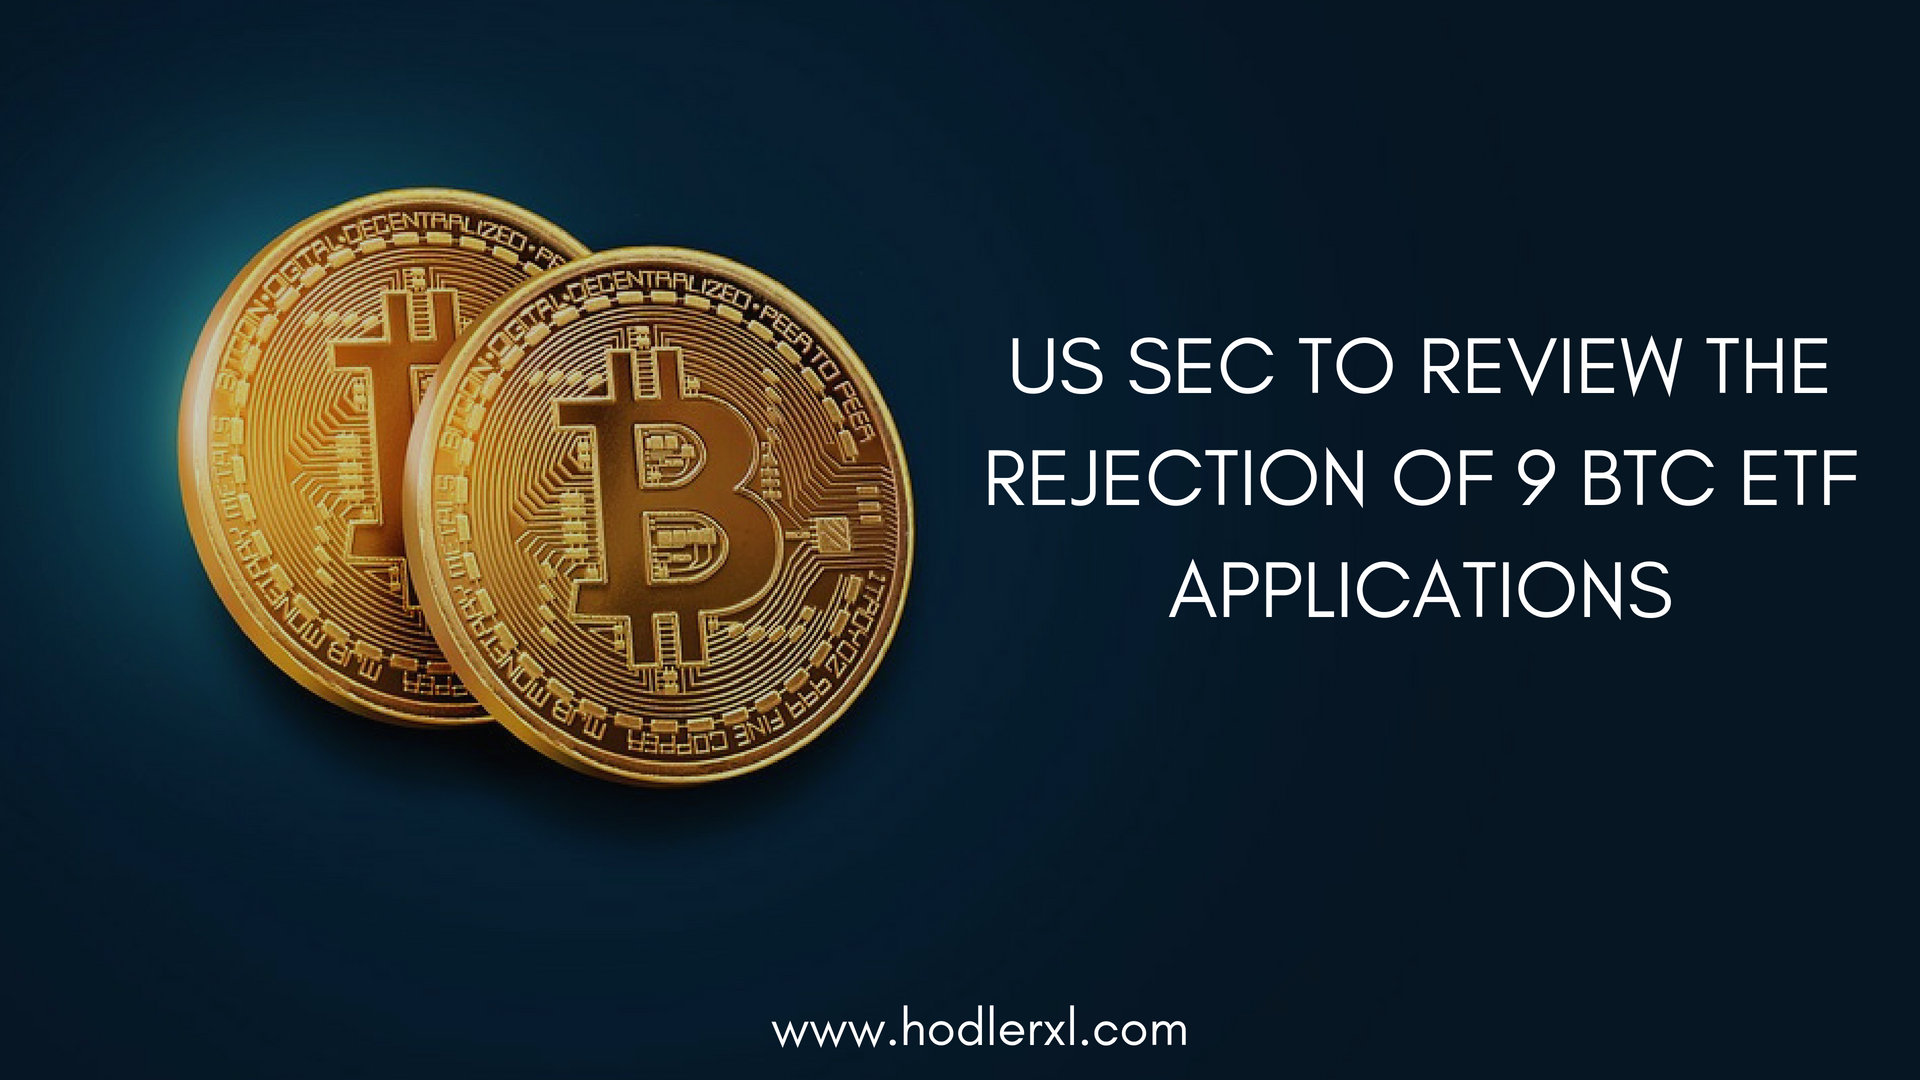 US SEC to Review the Rejection of 9 BTC ETF Applications